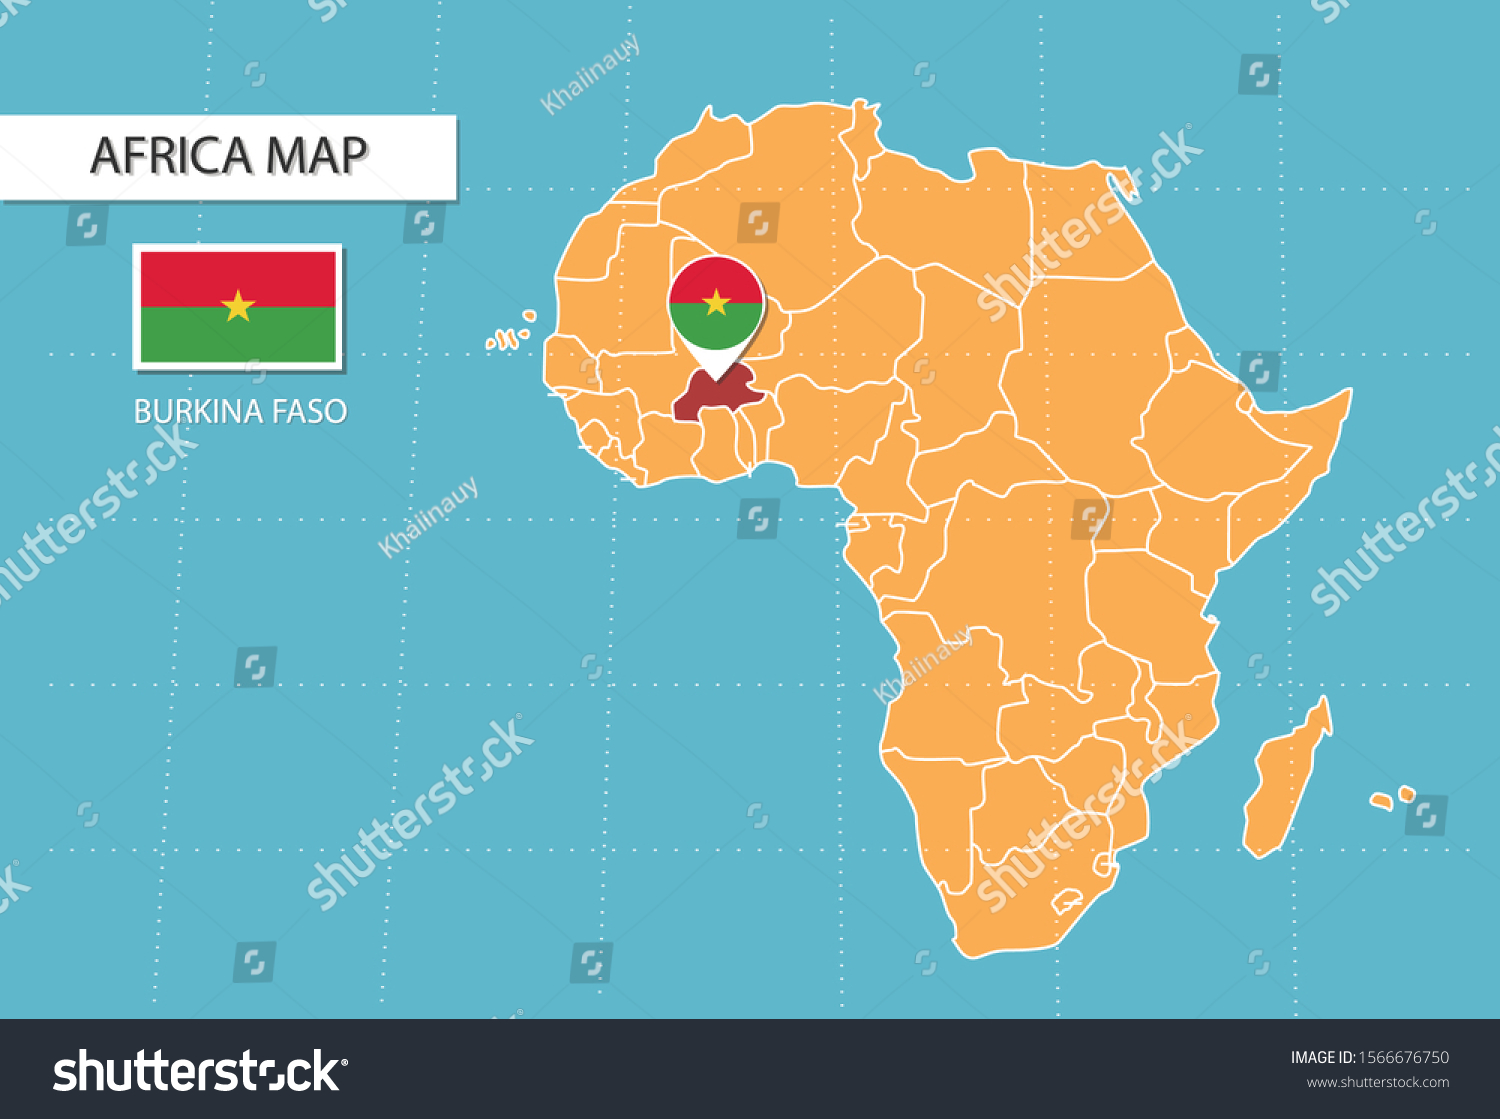 Burkina Faso Map Africa Icons Showing Stock Vector Royalty Free